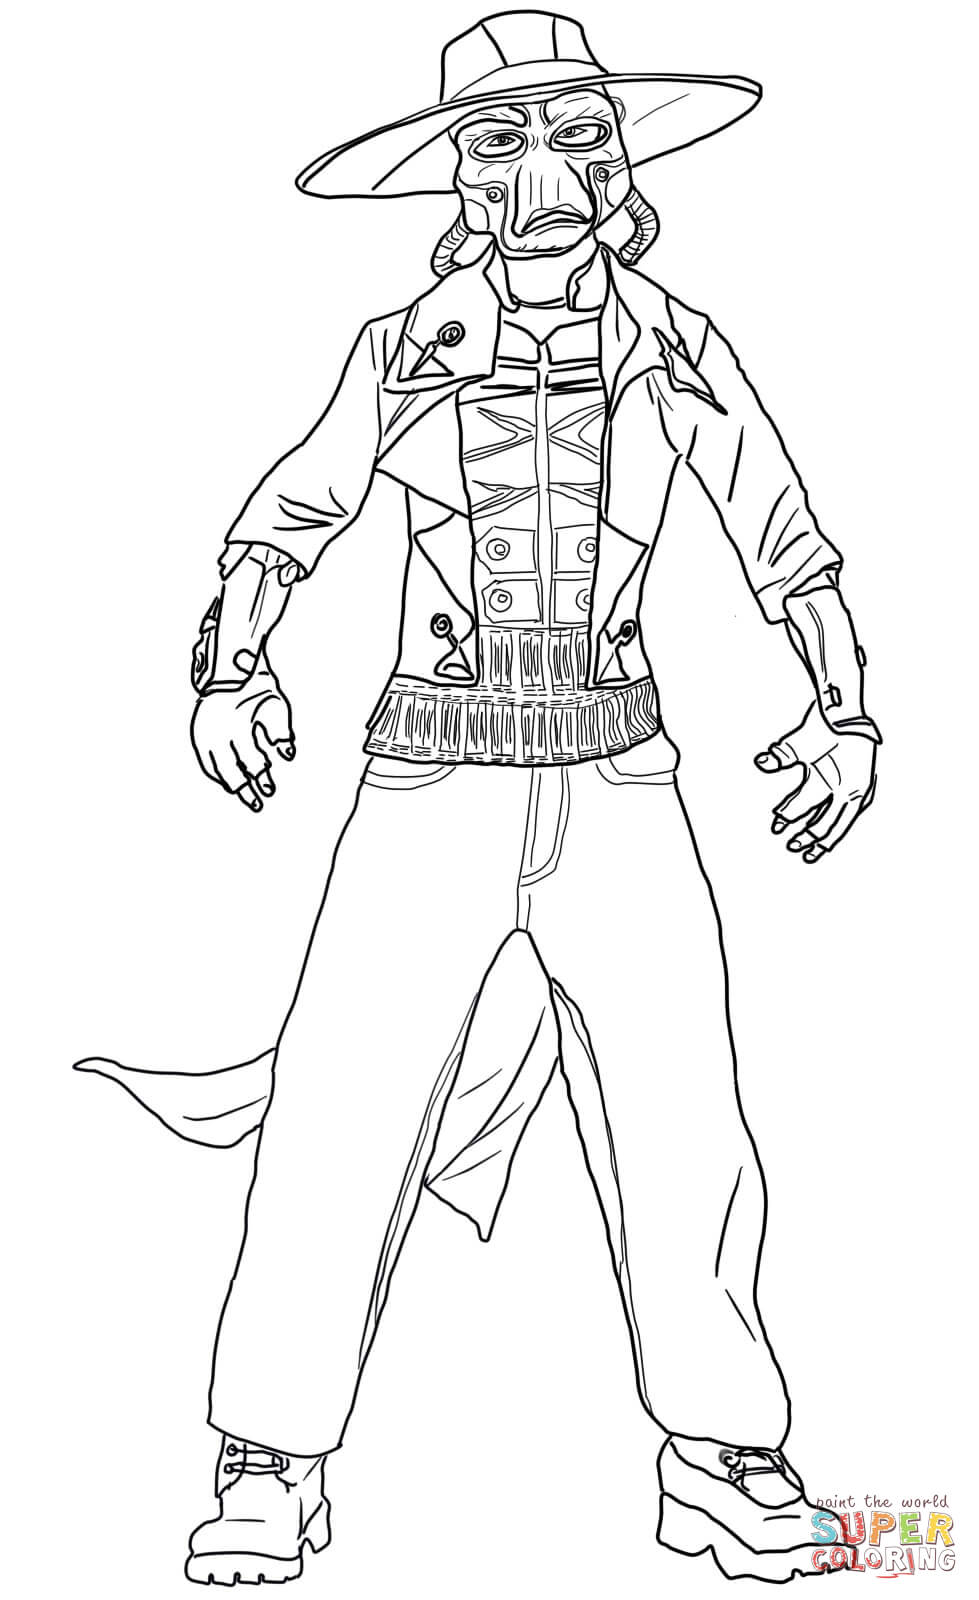 979x1600 Cad Bane Coloring Page Free Printable Pages With Kit Fisto